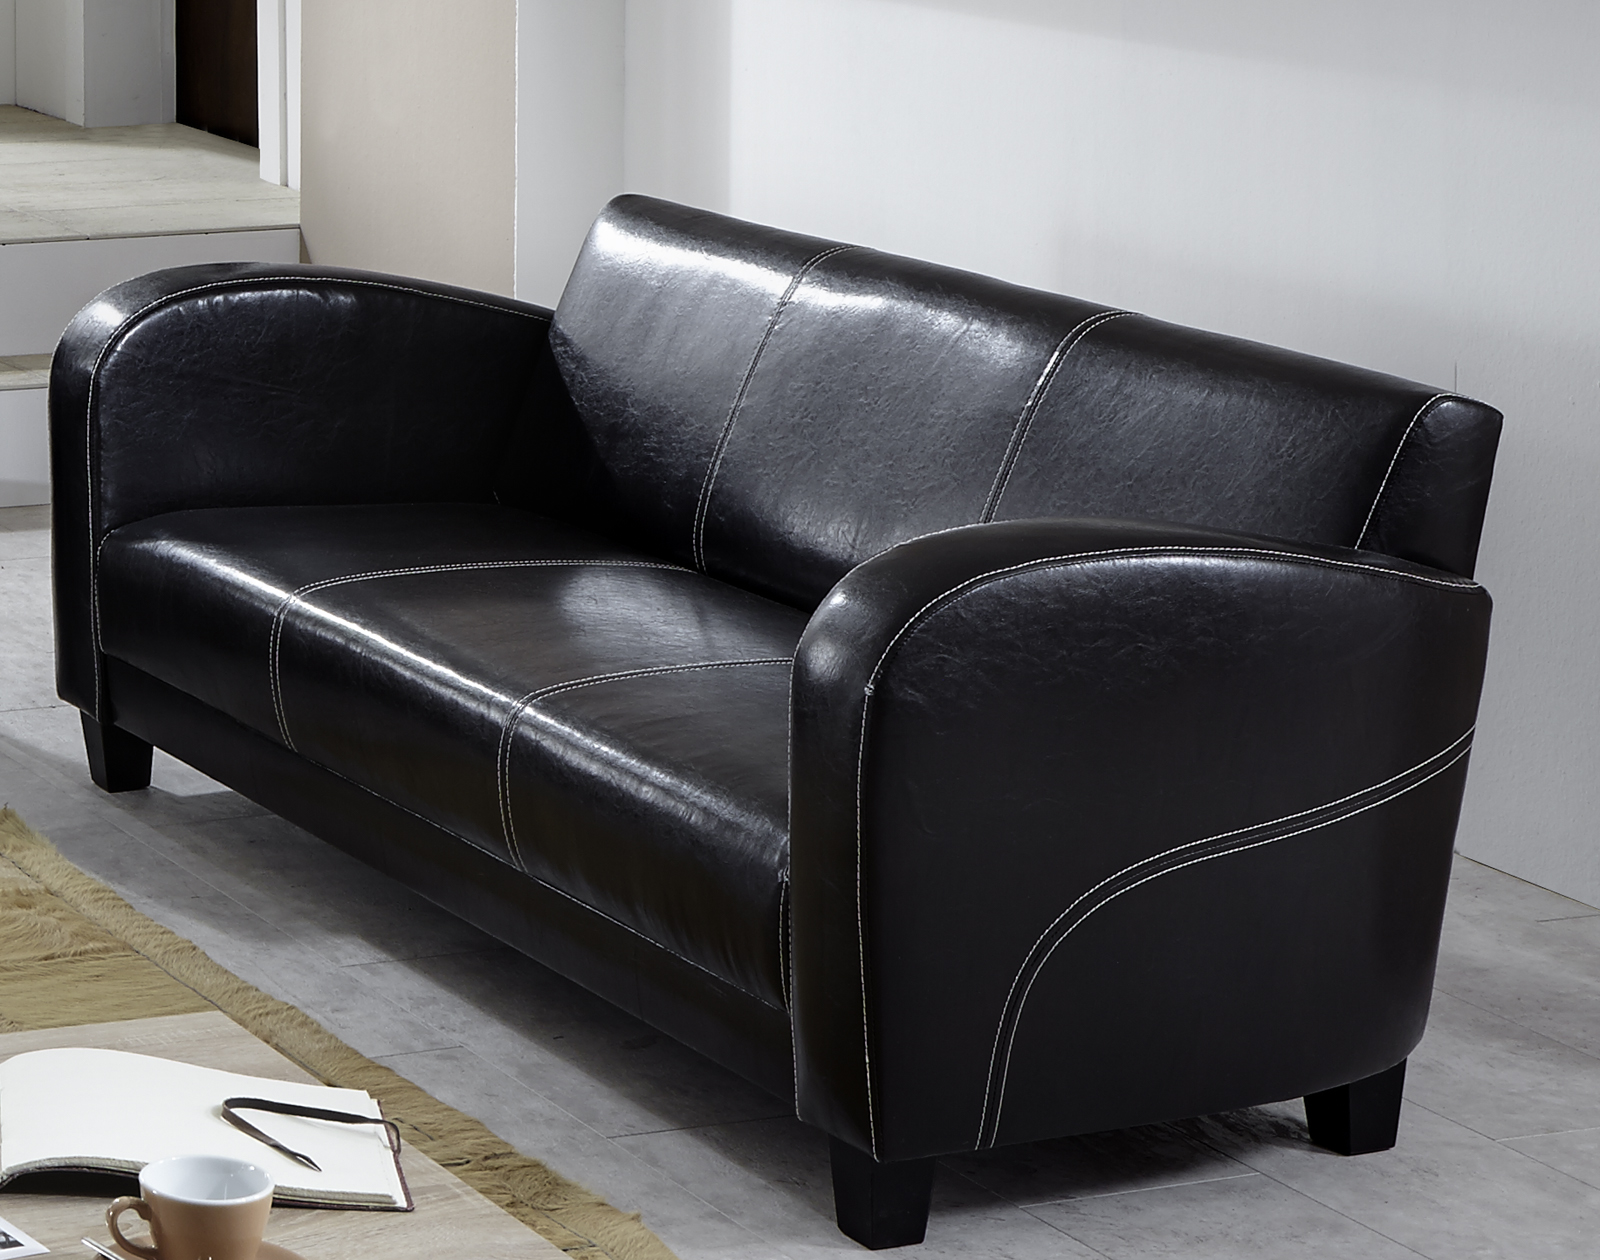 Sam 3tlg sofa garnitur antik braun patryk 3 2 1 for Sofa garnitur